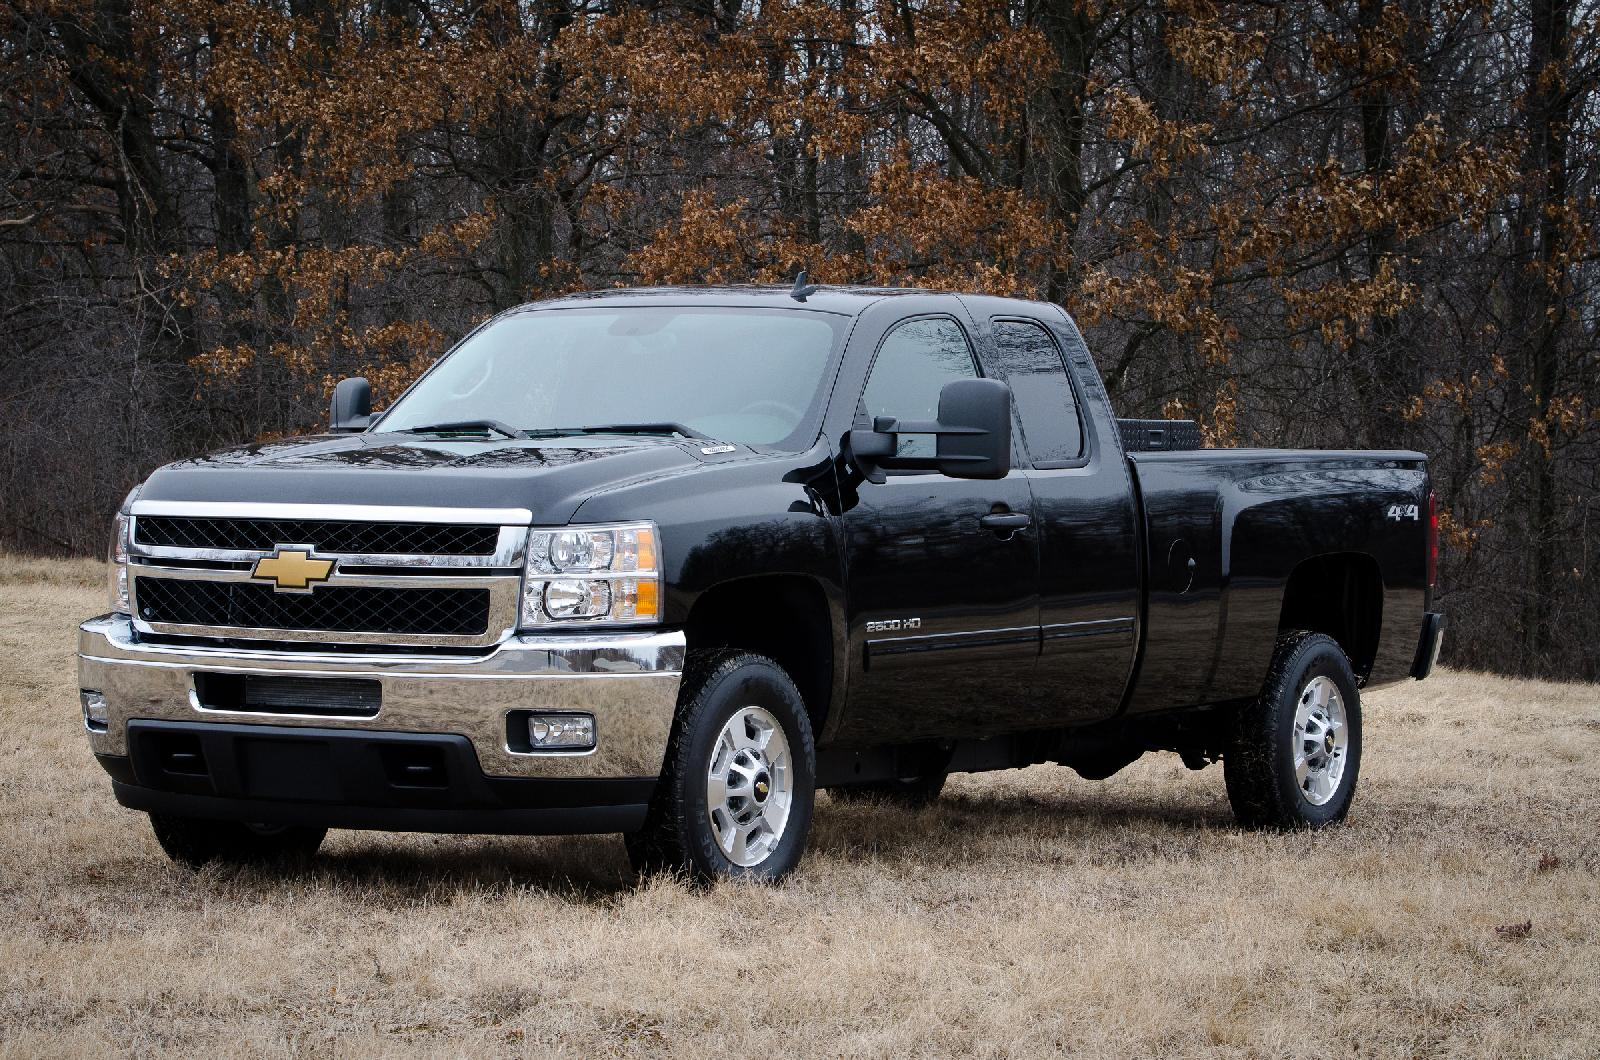 Used Lifted Chevy Trucks For Sale